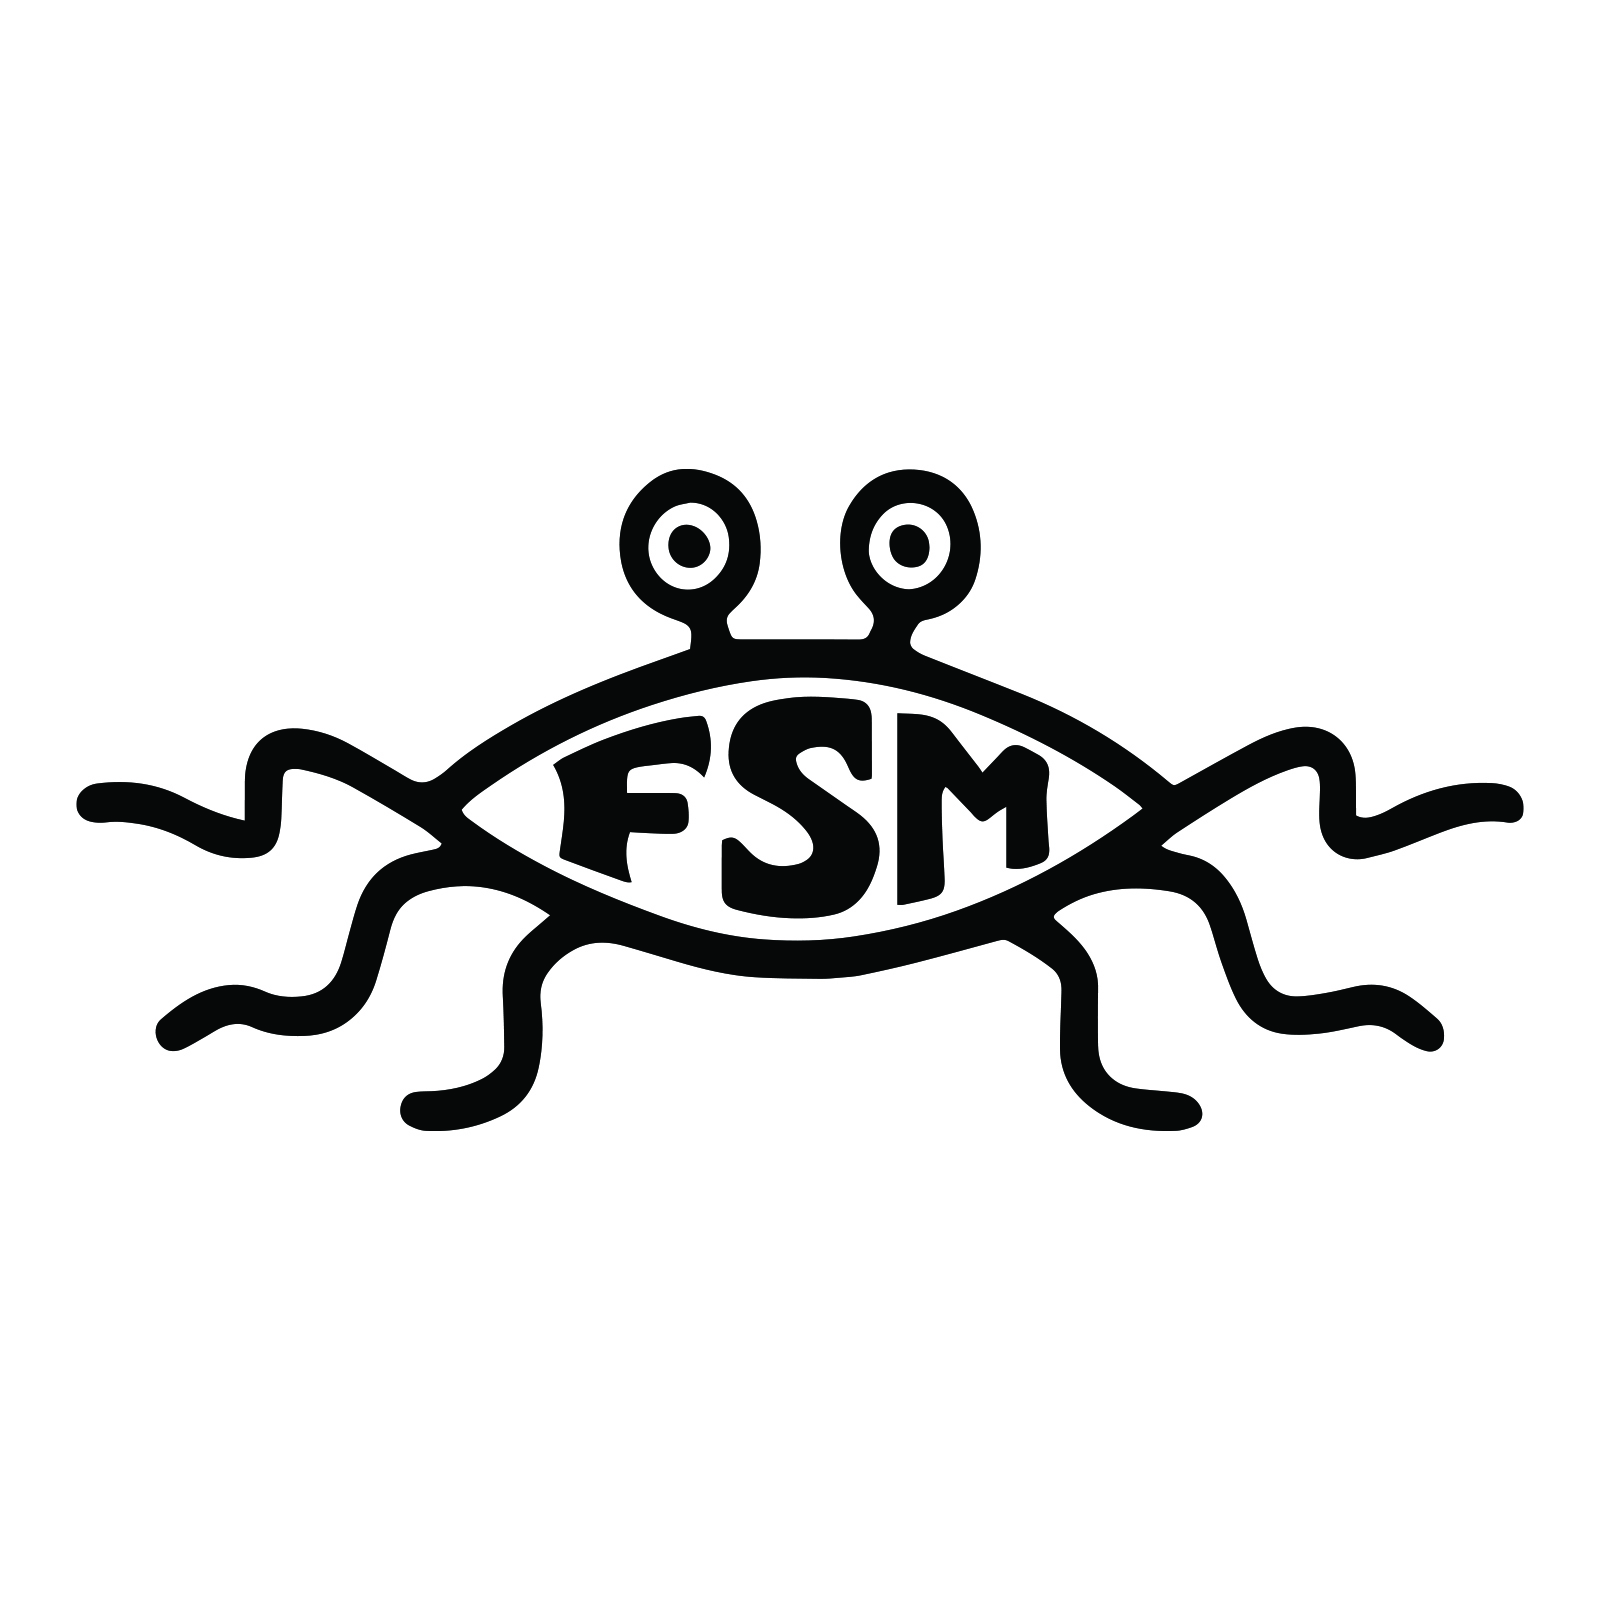 FSM Decals